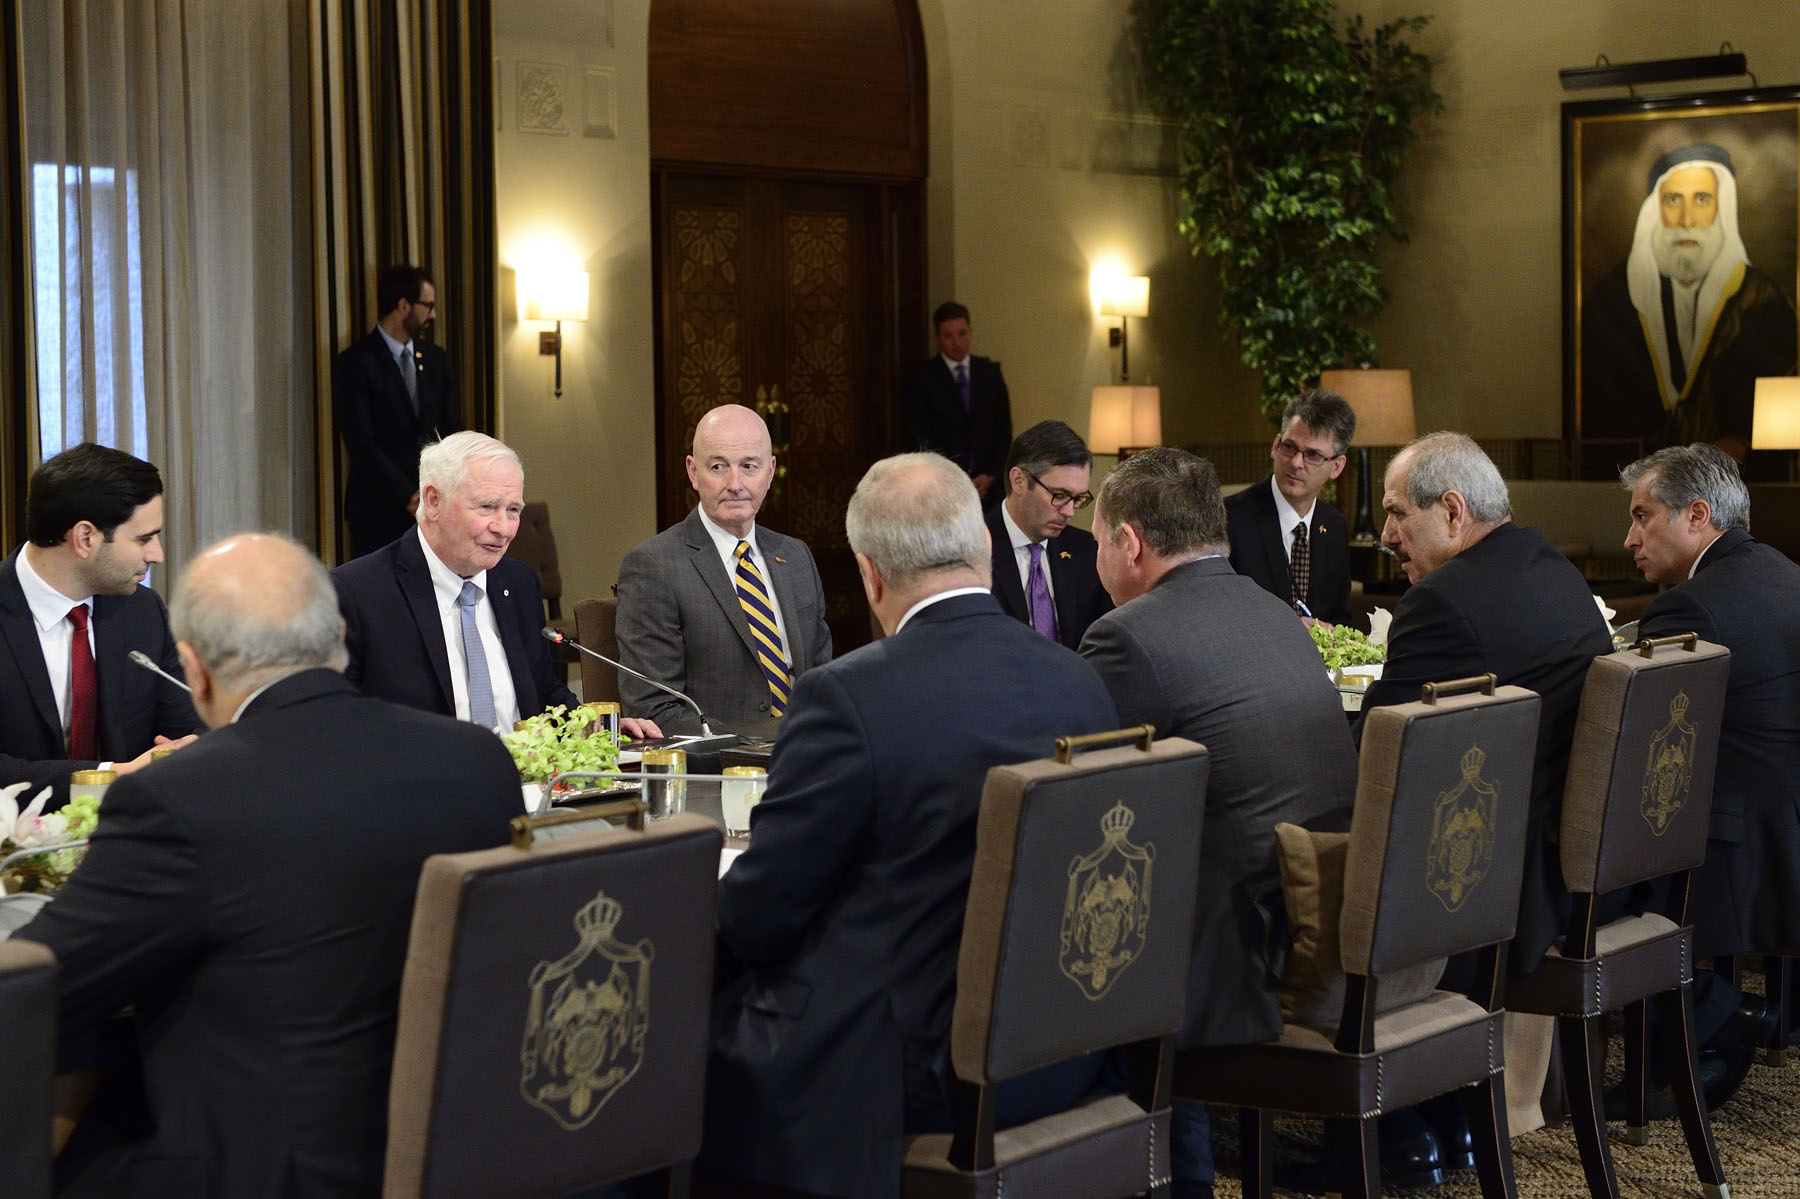 The Governor General and King Abdullah II delivered opening statements before taking part in an expanded meeting with members of the Canadian delegation and representatives of the Government of Jordan to discuss issues of common interest to Canada and Jordan, such as immigration, development, education and innovation.